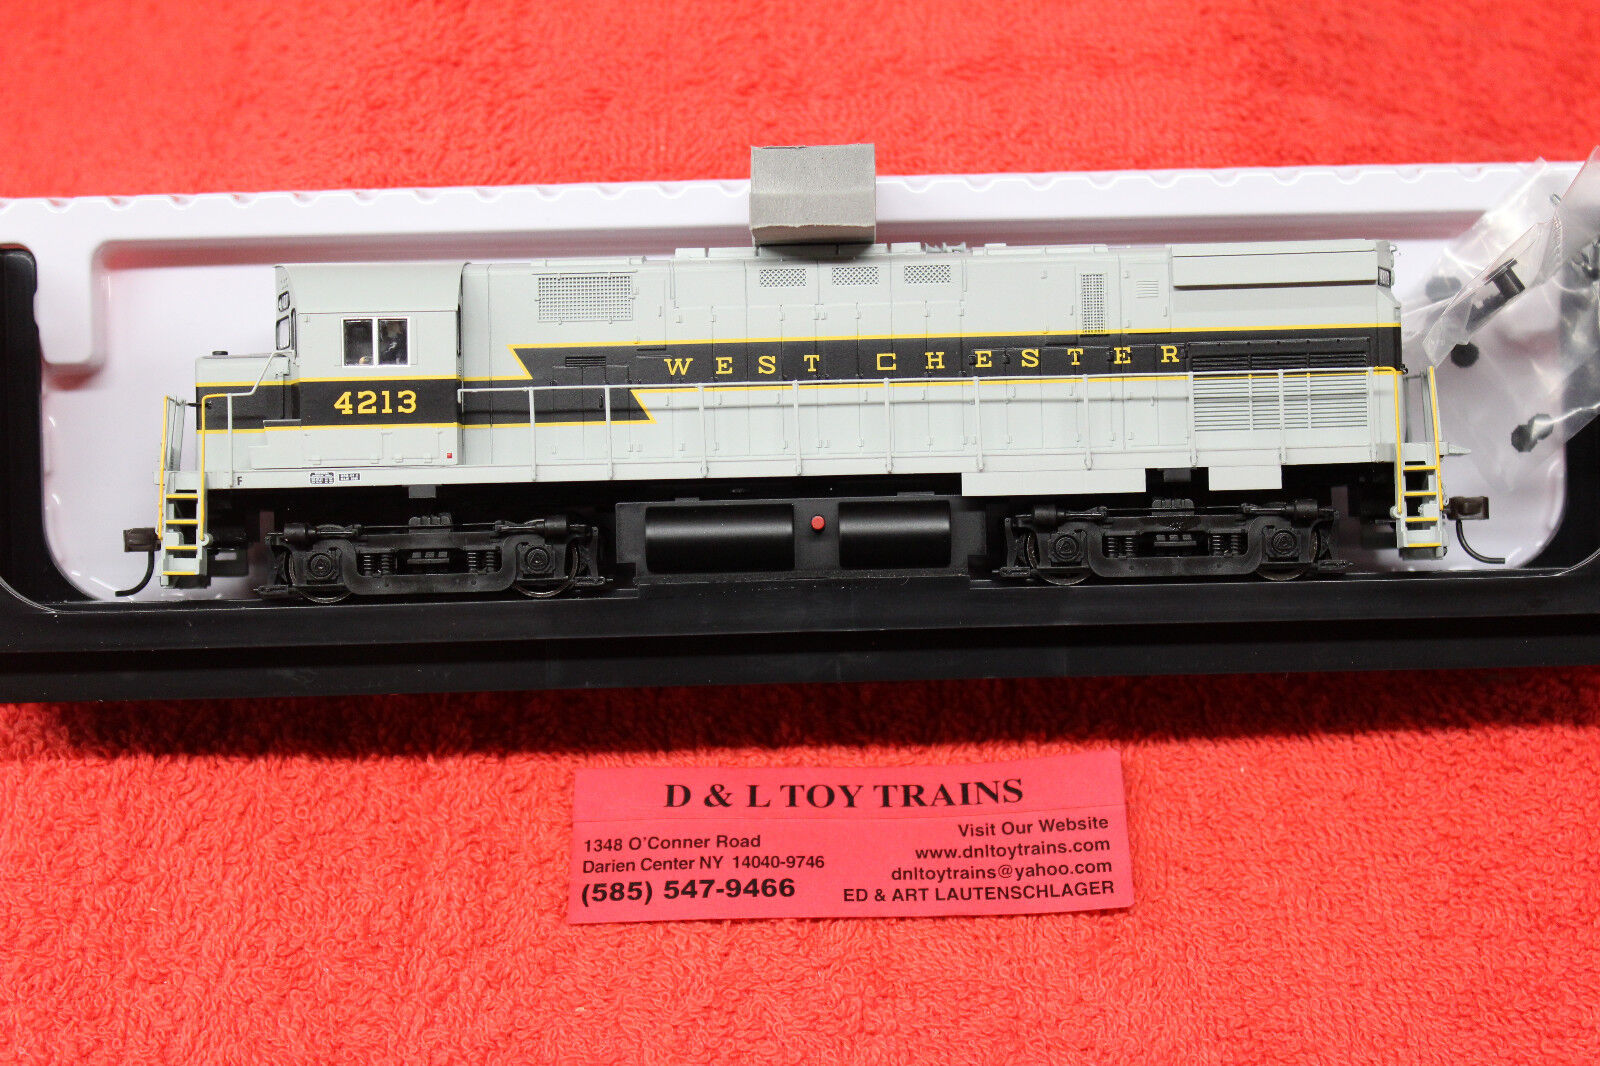 10002531 West Chester Railroad C424 Phase 3 DCC Ready Diesel Engine